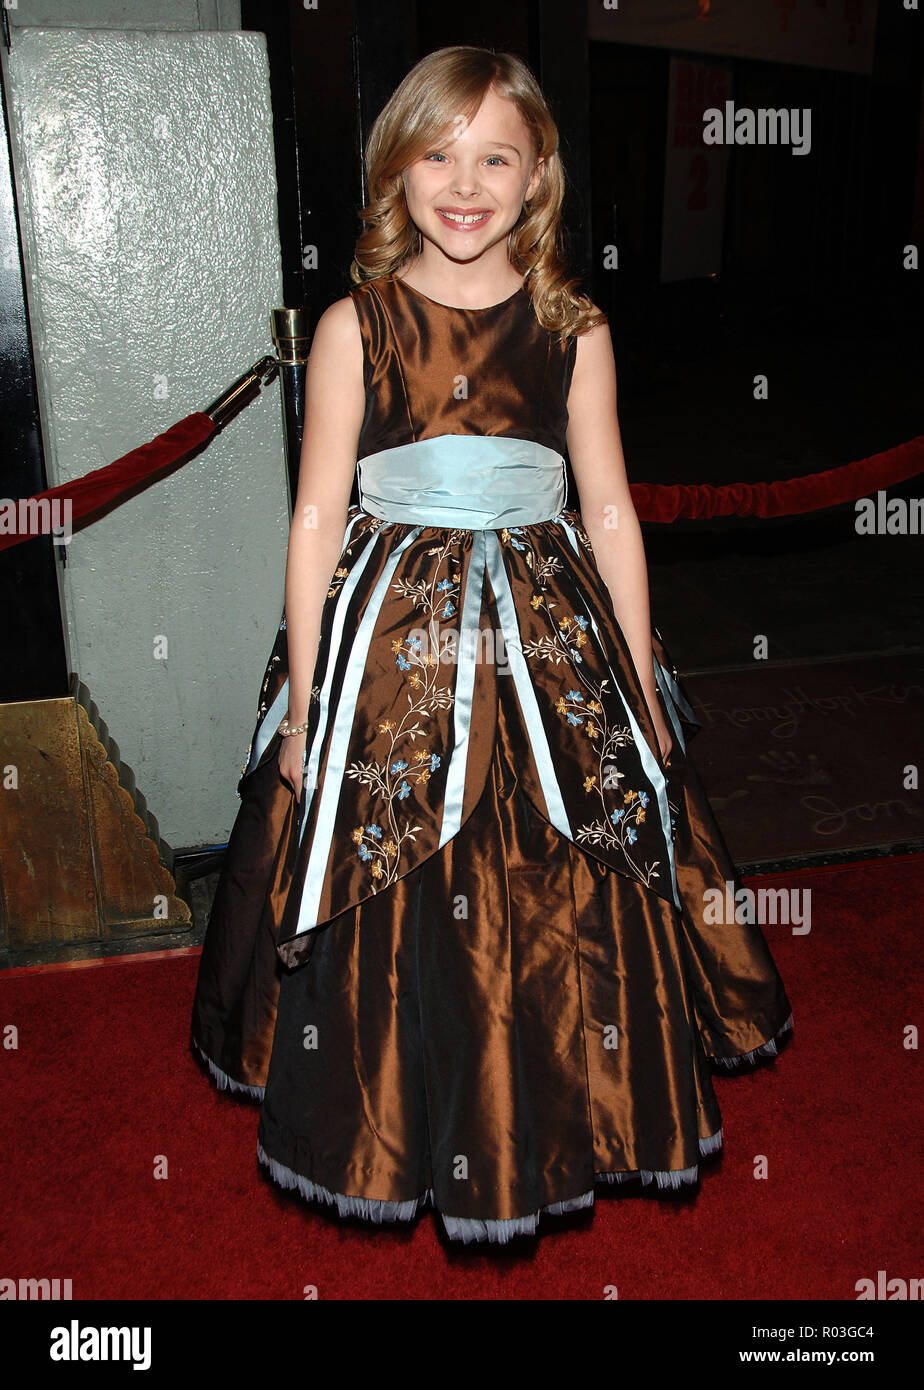 Chloe Grace Moretz Arriving At The Big Momma S House 2 Premiere At